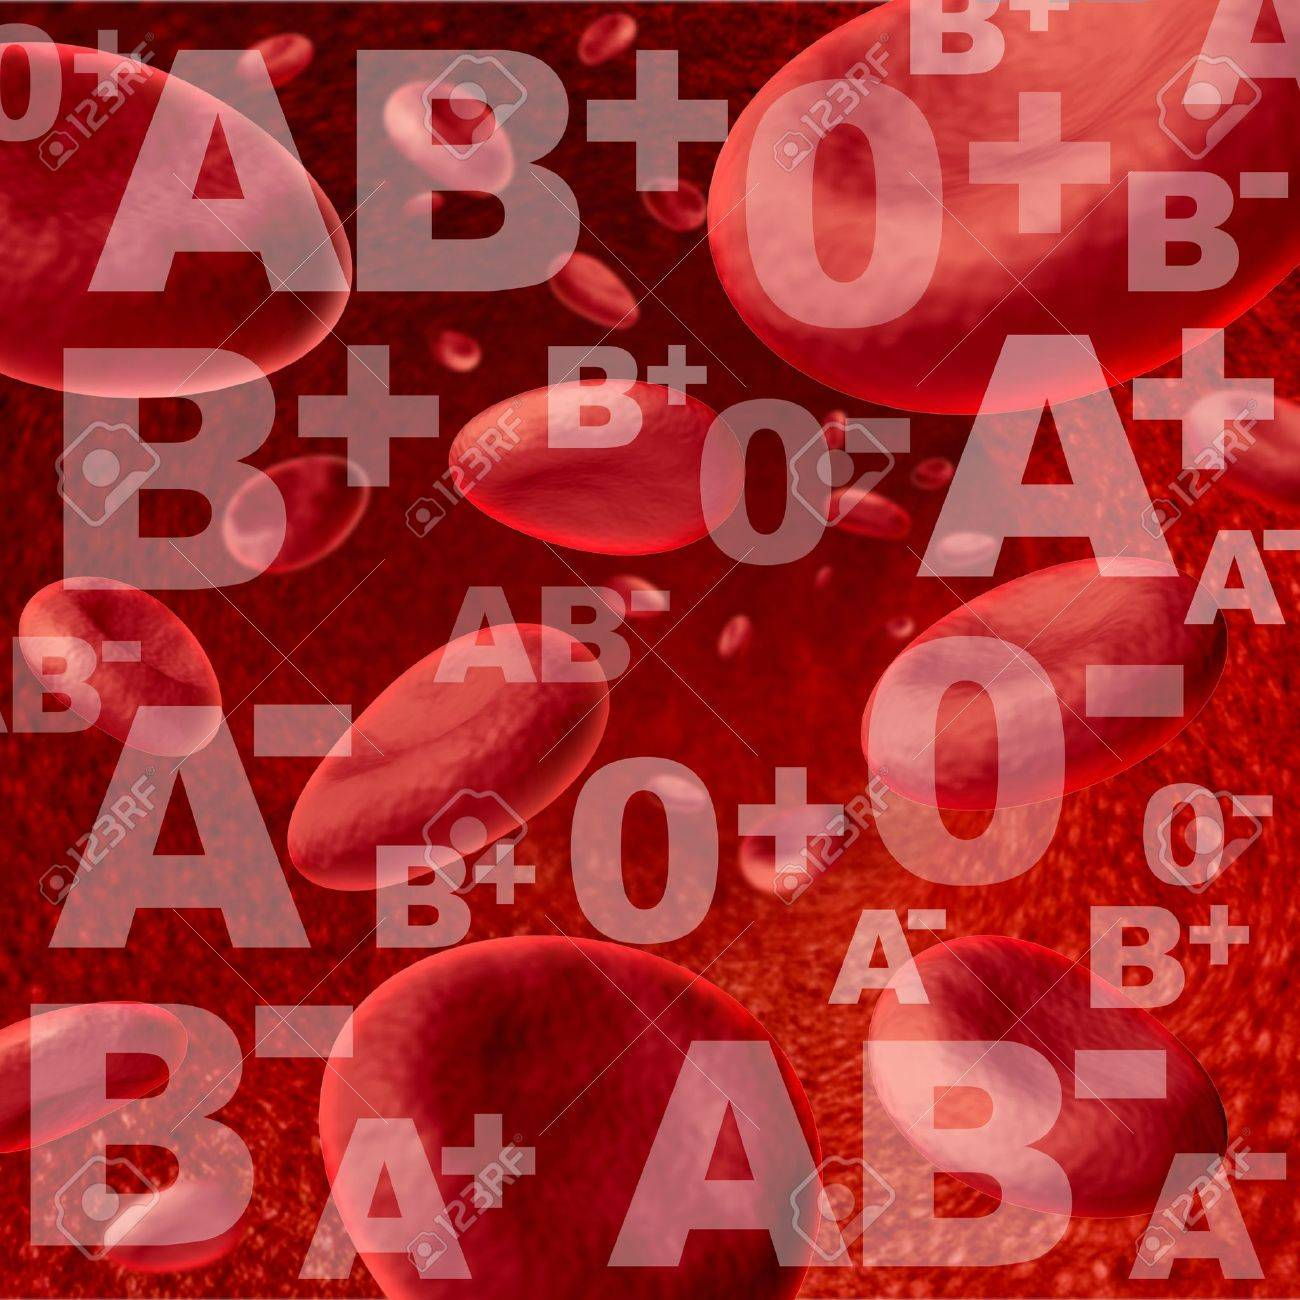 different blood group and types representing red blood cells flowing  through veins and human circulatory system